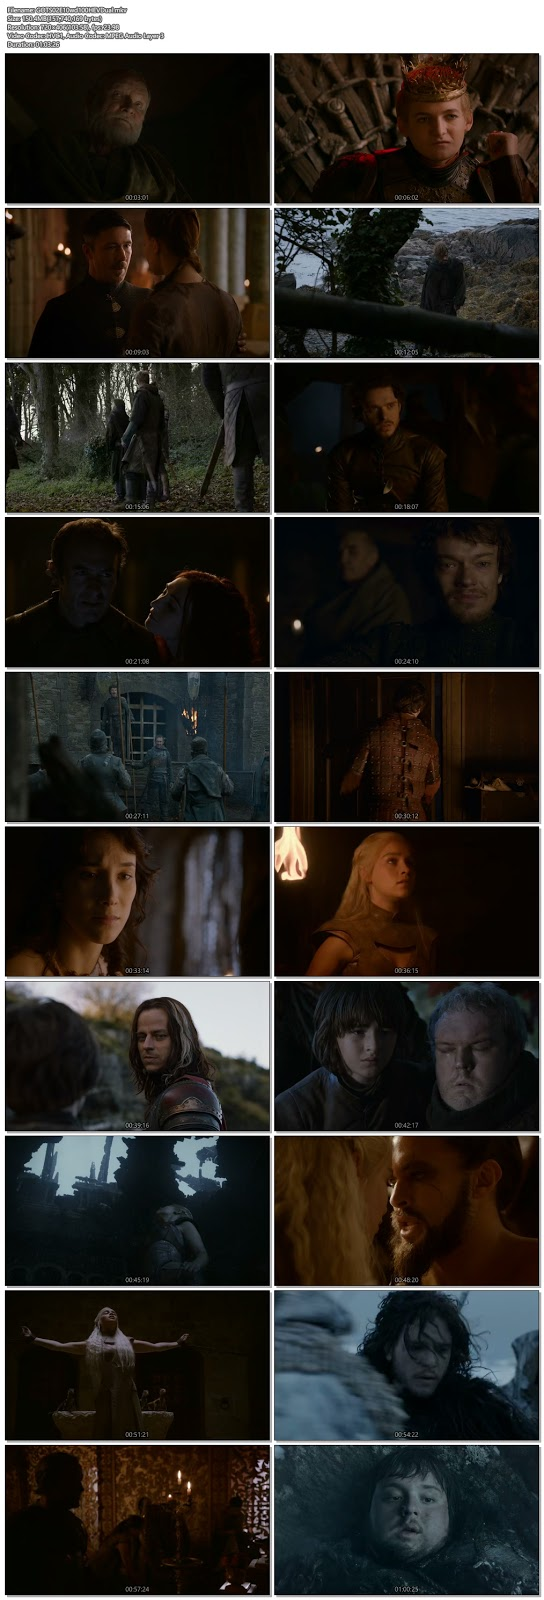 Game Of Thrones S02E10 Dual Audio BRRip 480p 100Mb x265 HEVC dual audio hindi dubbed download and watch online only at world4ufree.fun